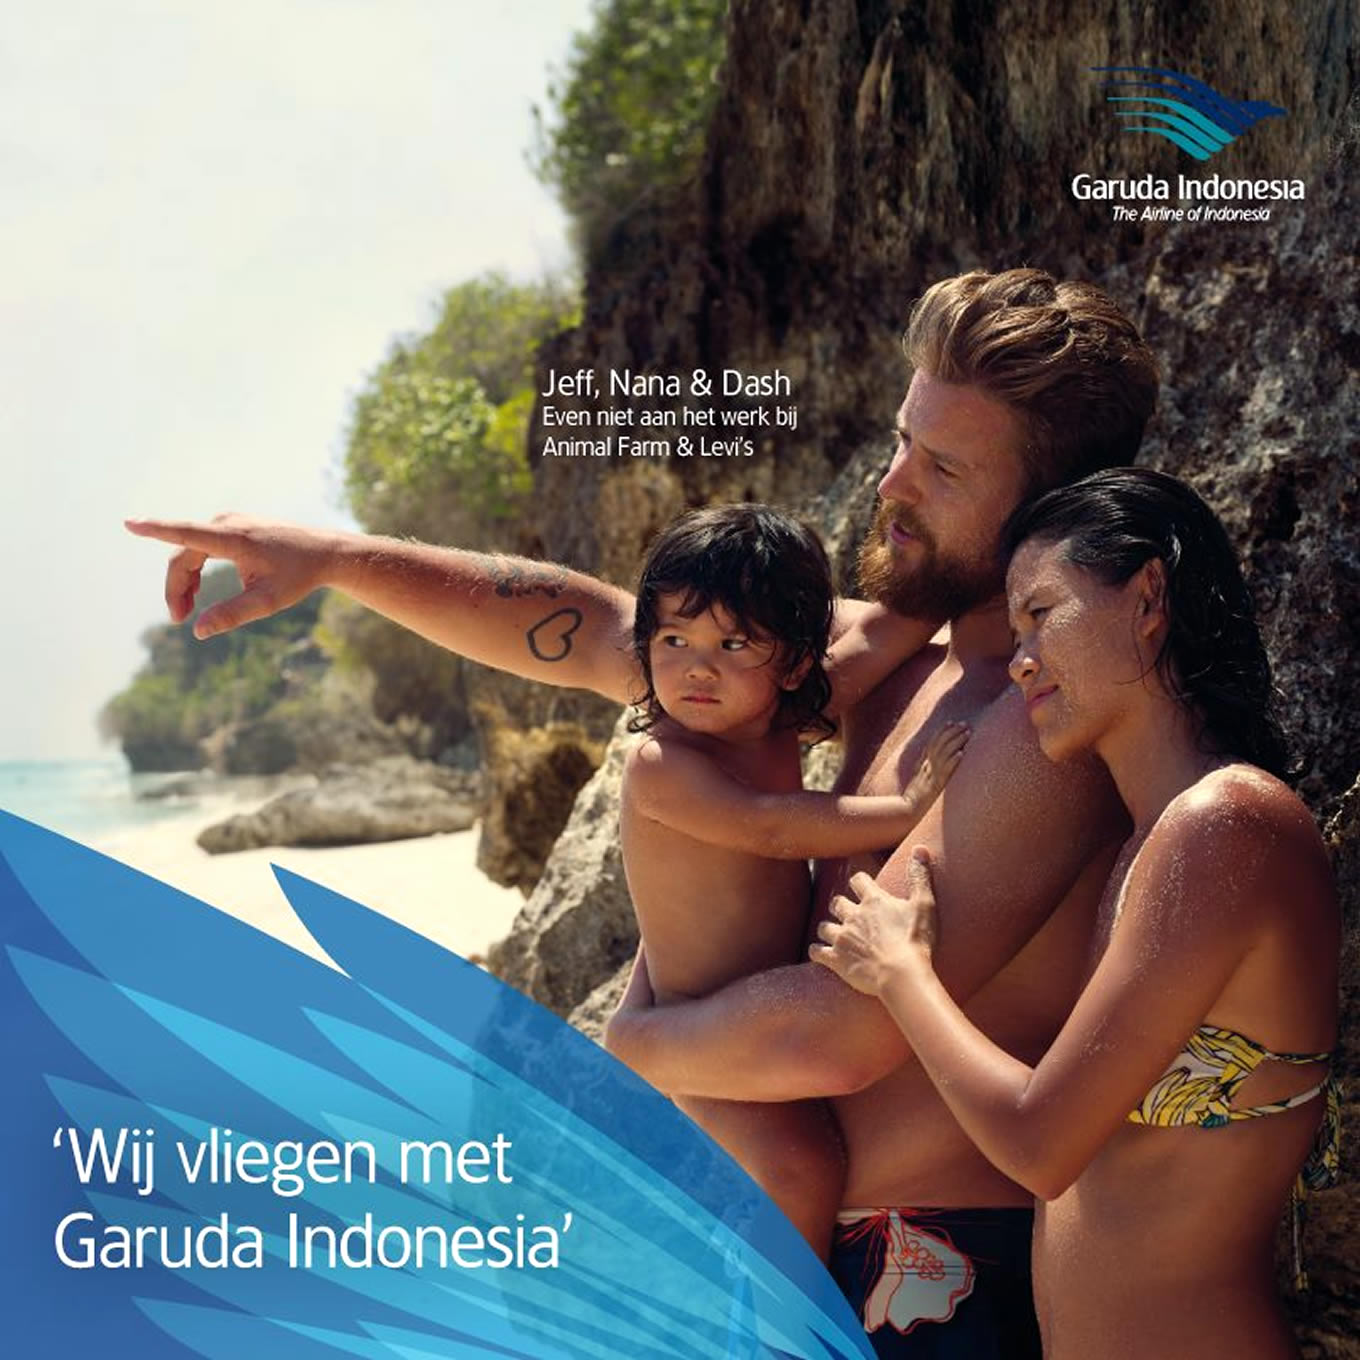 Jeff and Nana Family Holiday, Ik Vlieg Met Travel Marketing Campaign by Garuda Indonesia Netherland